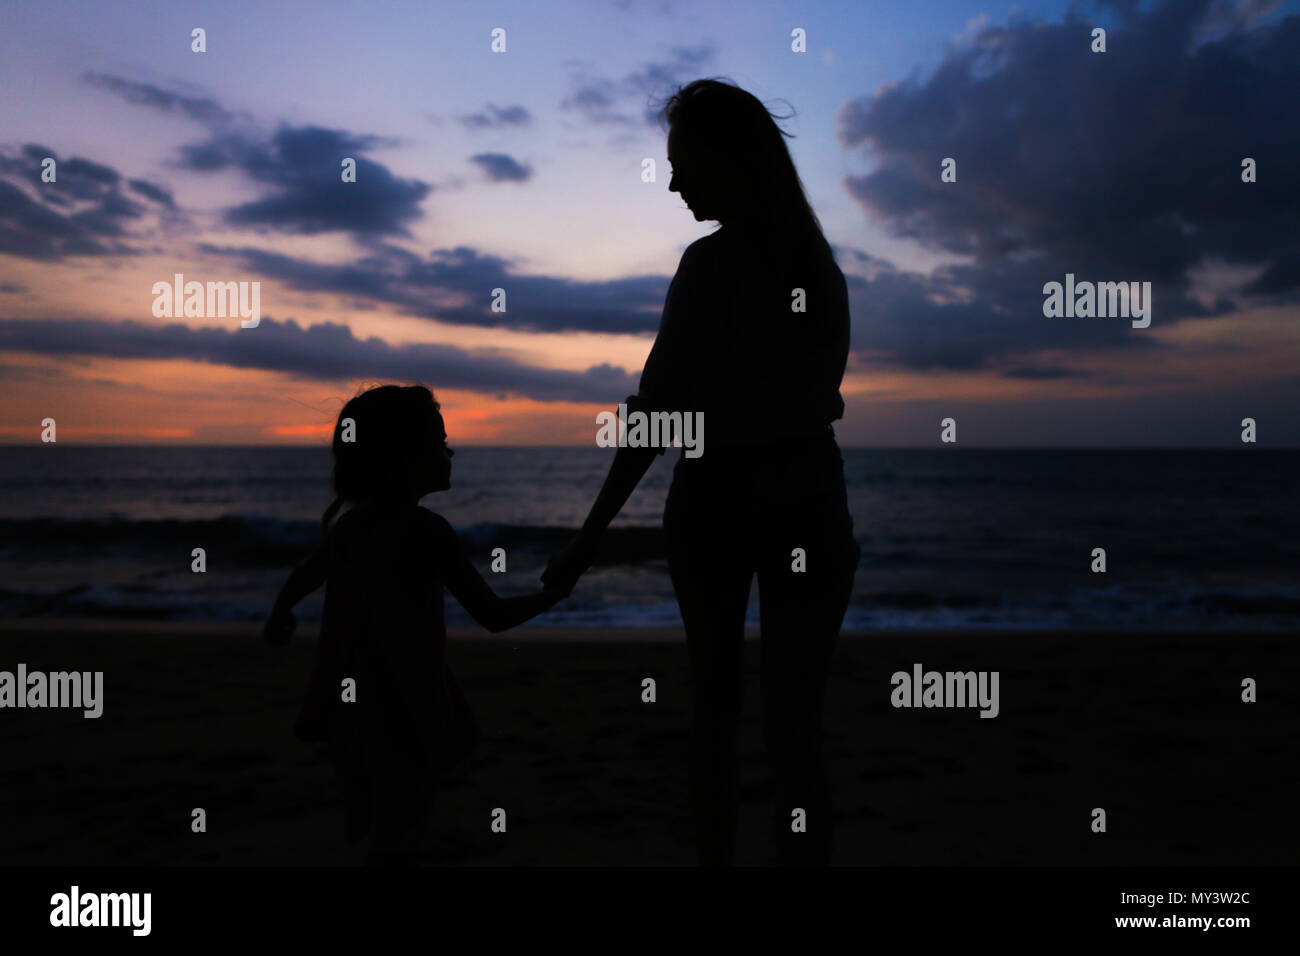 7a30c482def6 Black silhouette of young female person walking with little girl near sea  in sunset background.